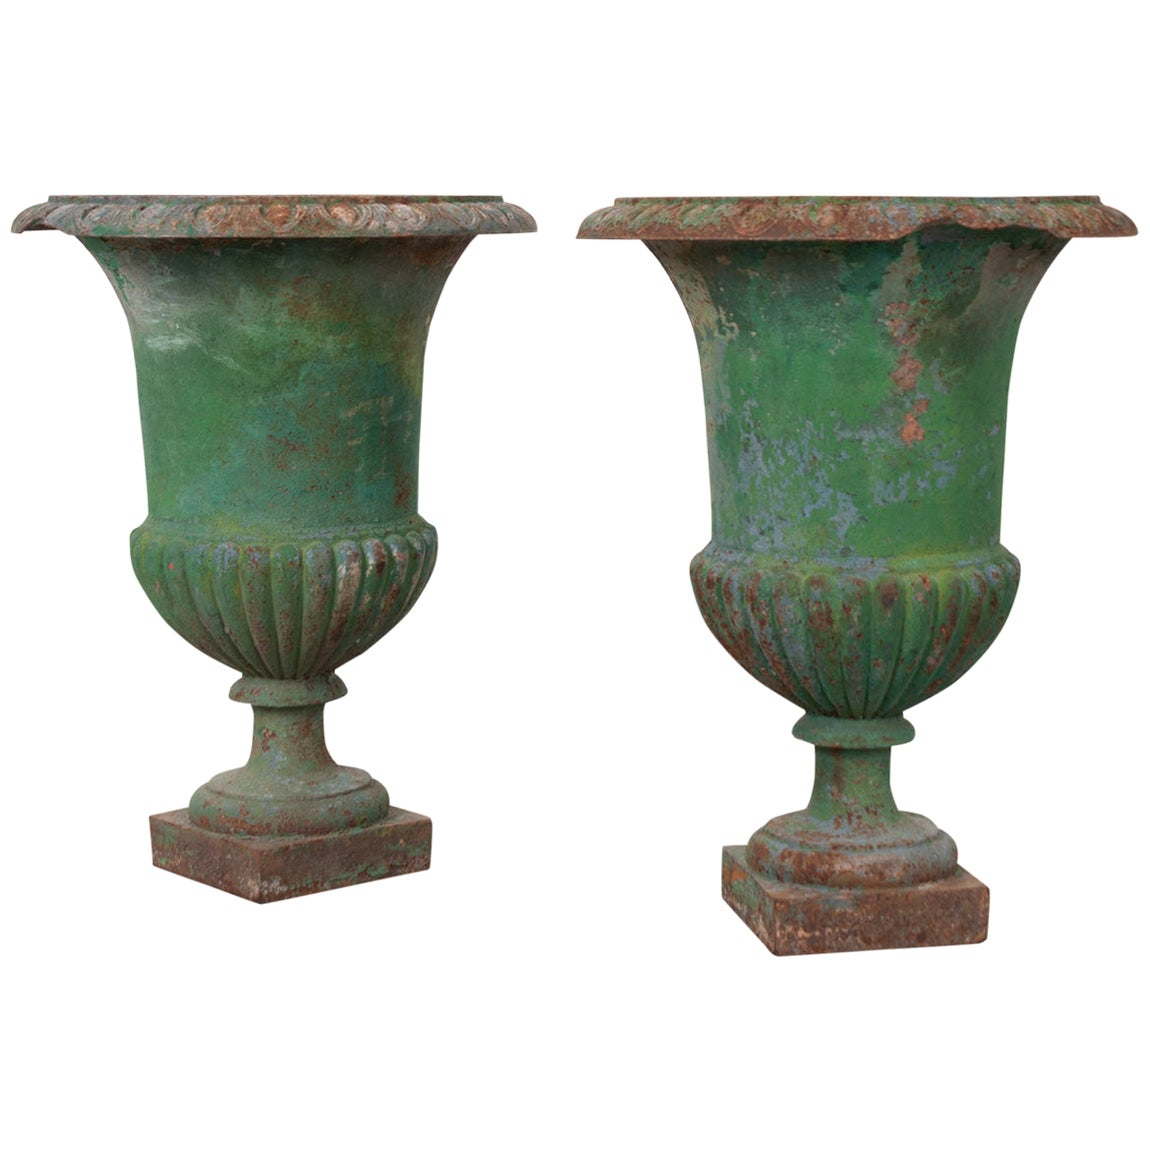 Pair of French 19th Century Painted Cast Iron Urns